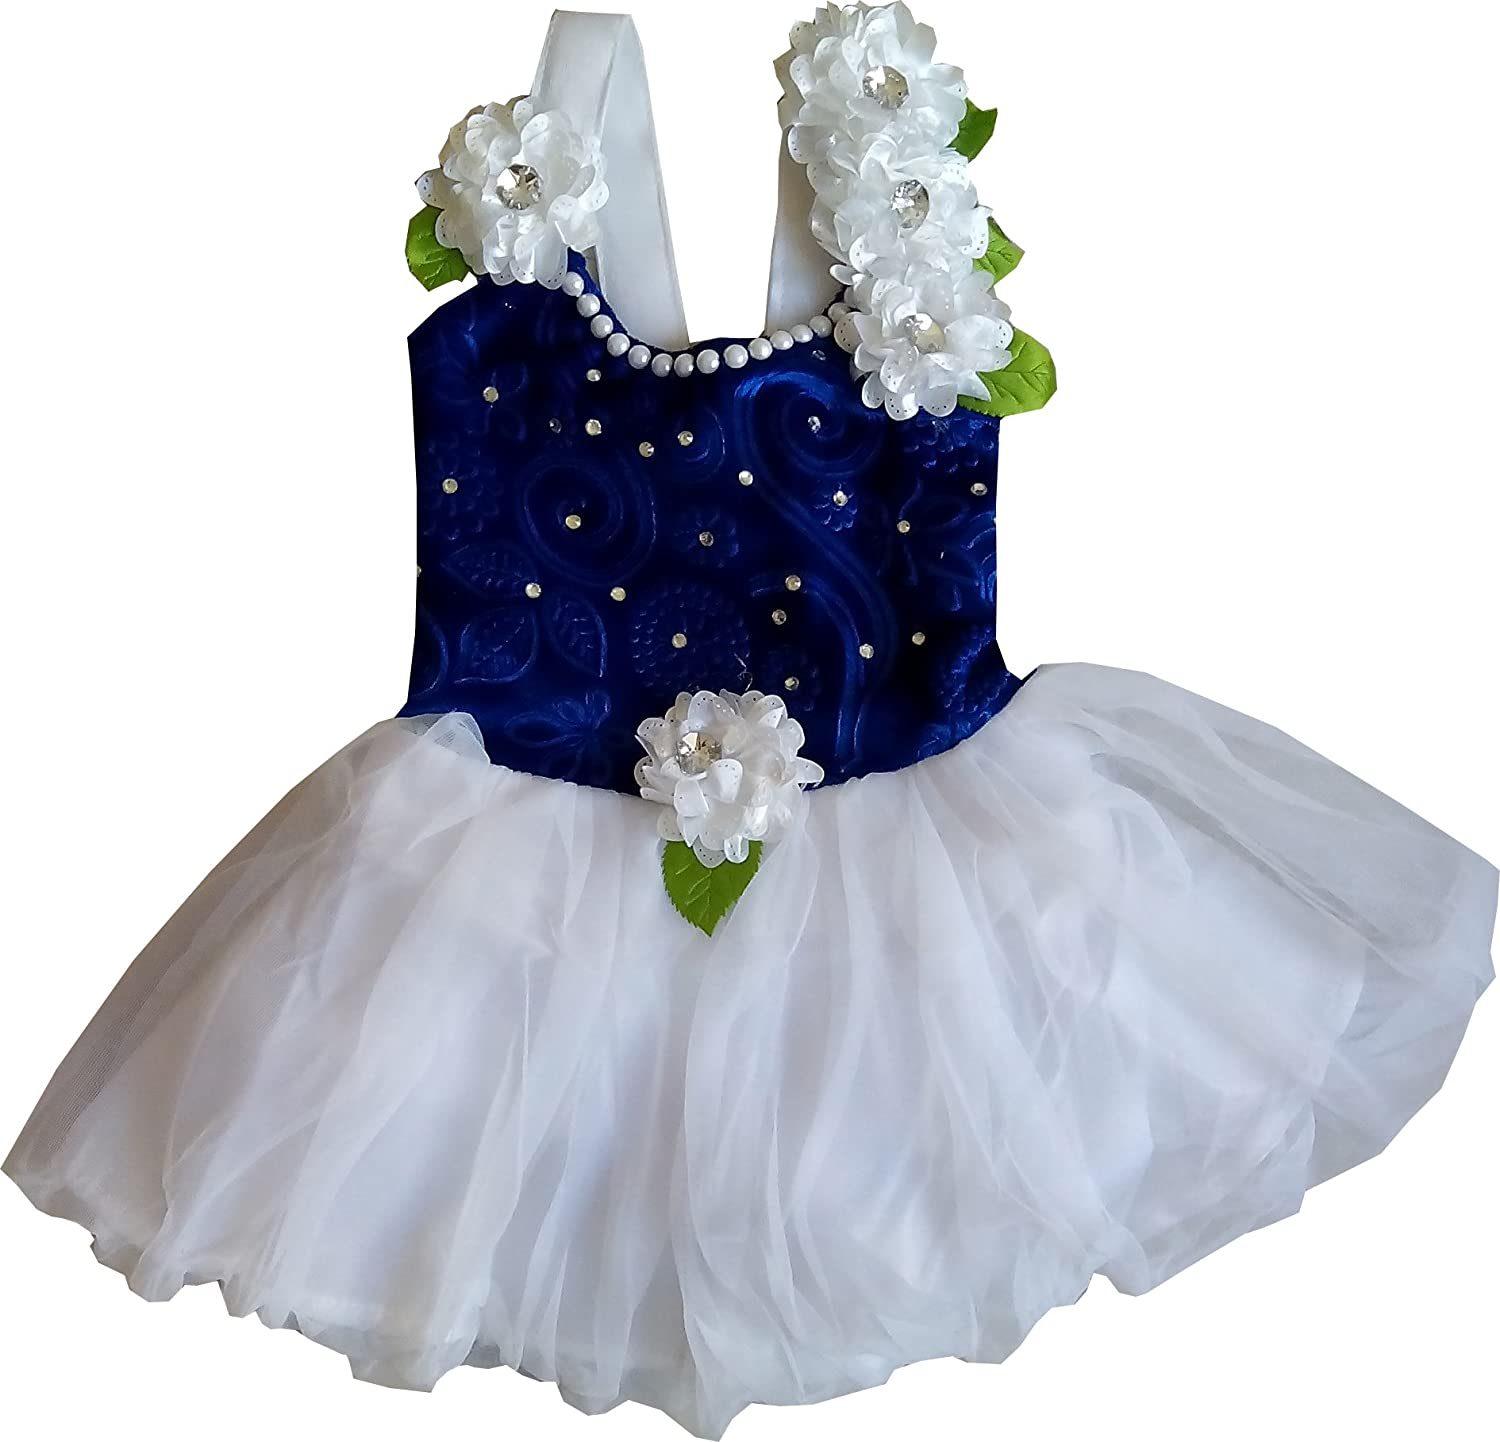 Blue dress for baby girl 4 months